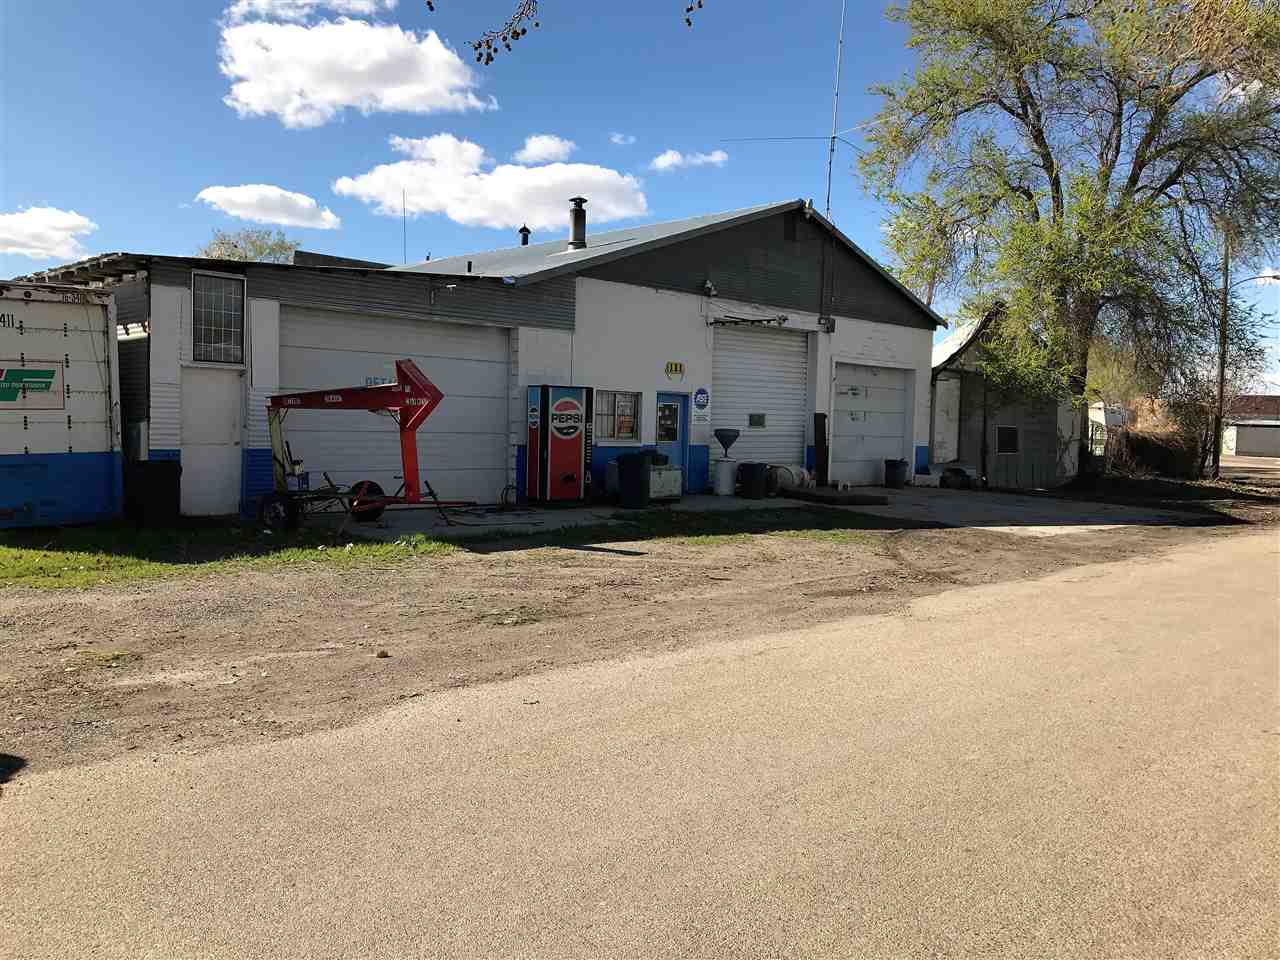 109 W 2nd Ave,Marsing,Idaho 83639,Business/Commercial,109 W 2nd Ave,98671651